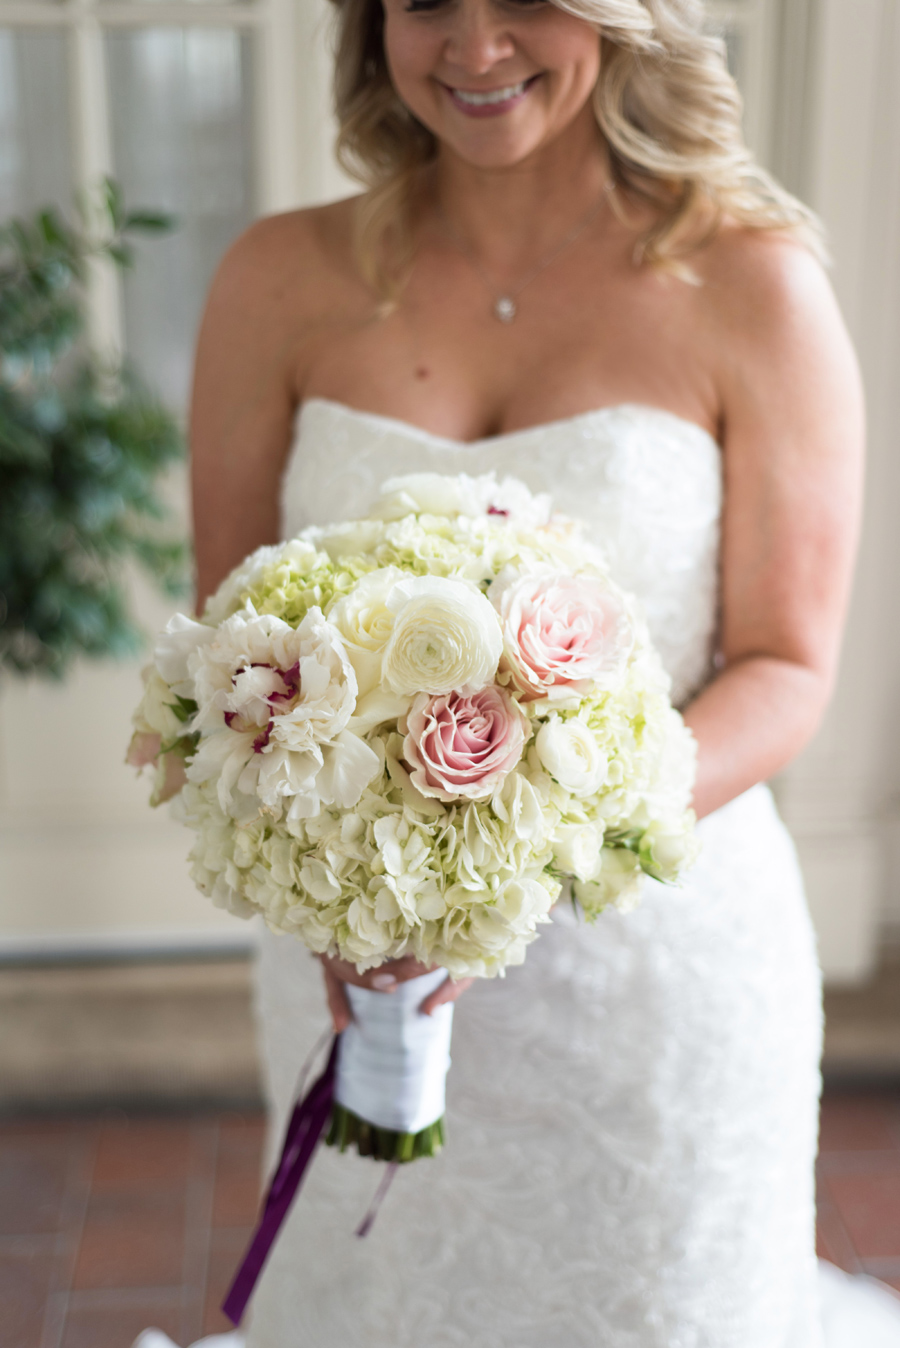 KrisandraEvans.com | Atlanta Wedding Photographer | The Georgian Terrace Hotel